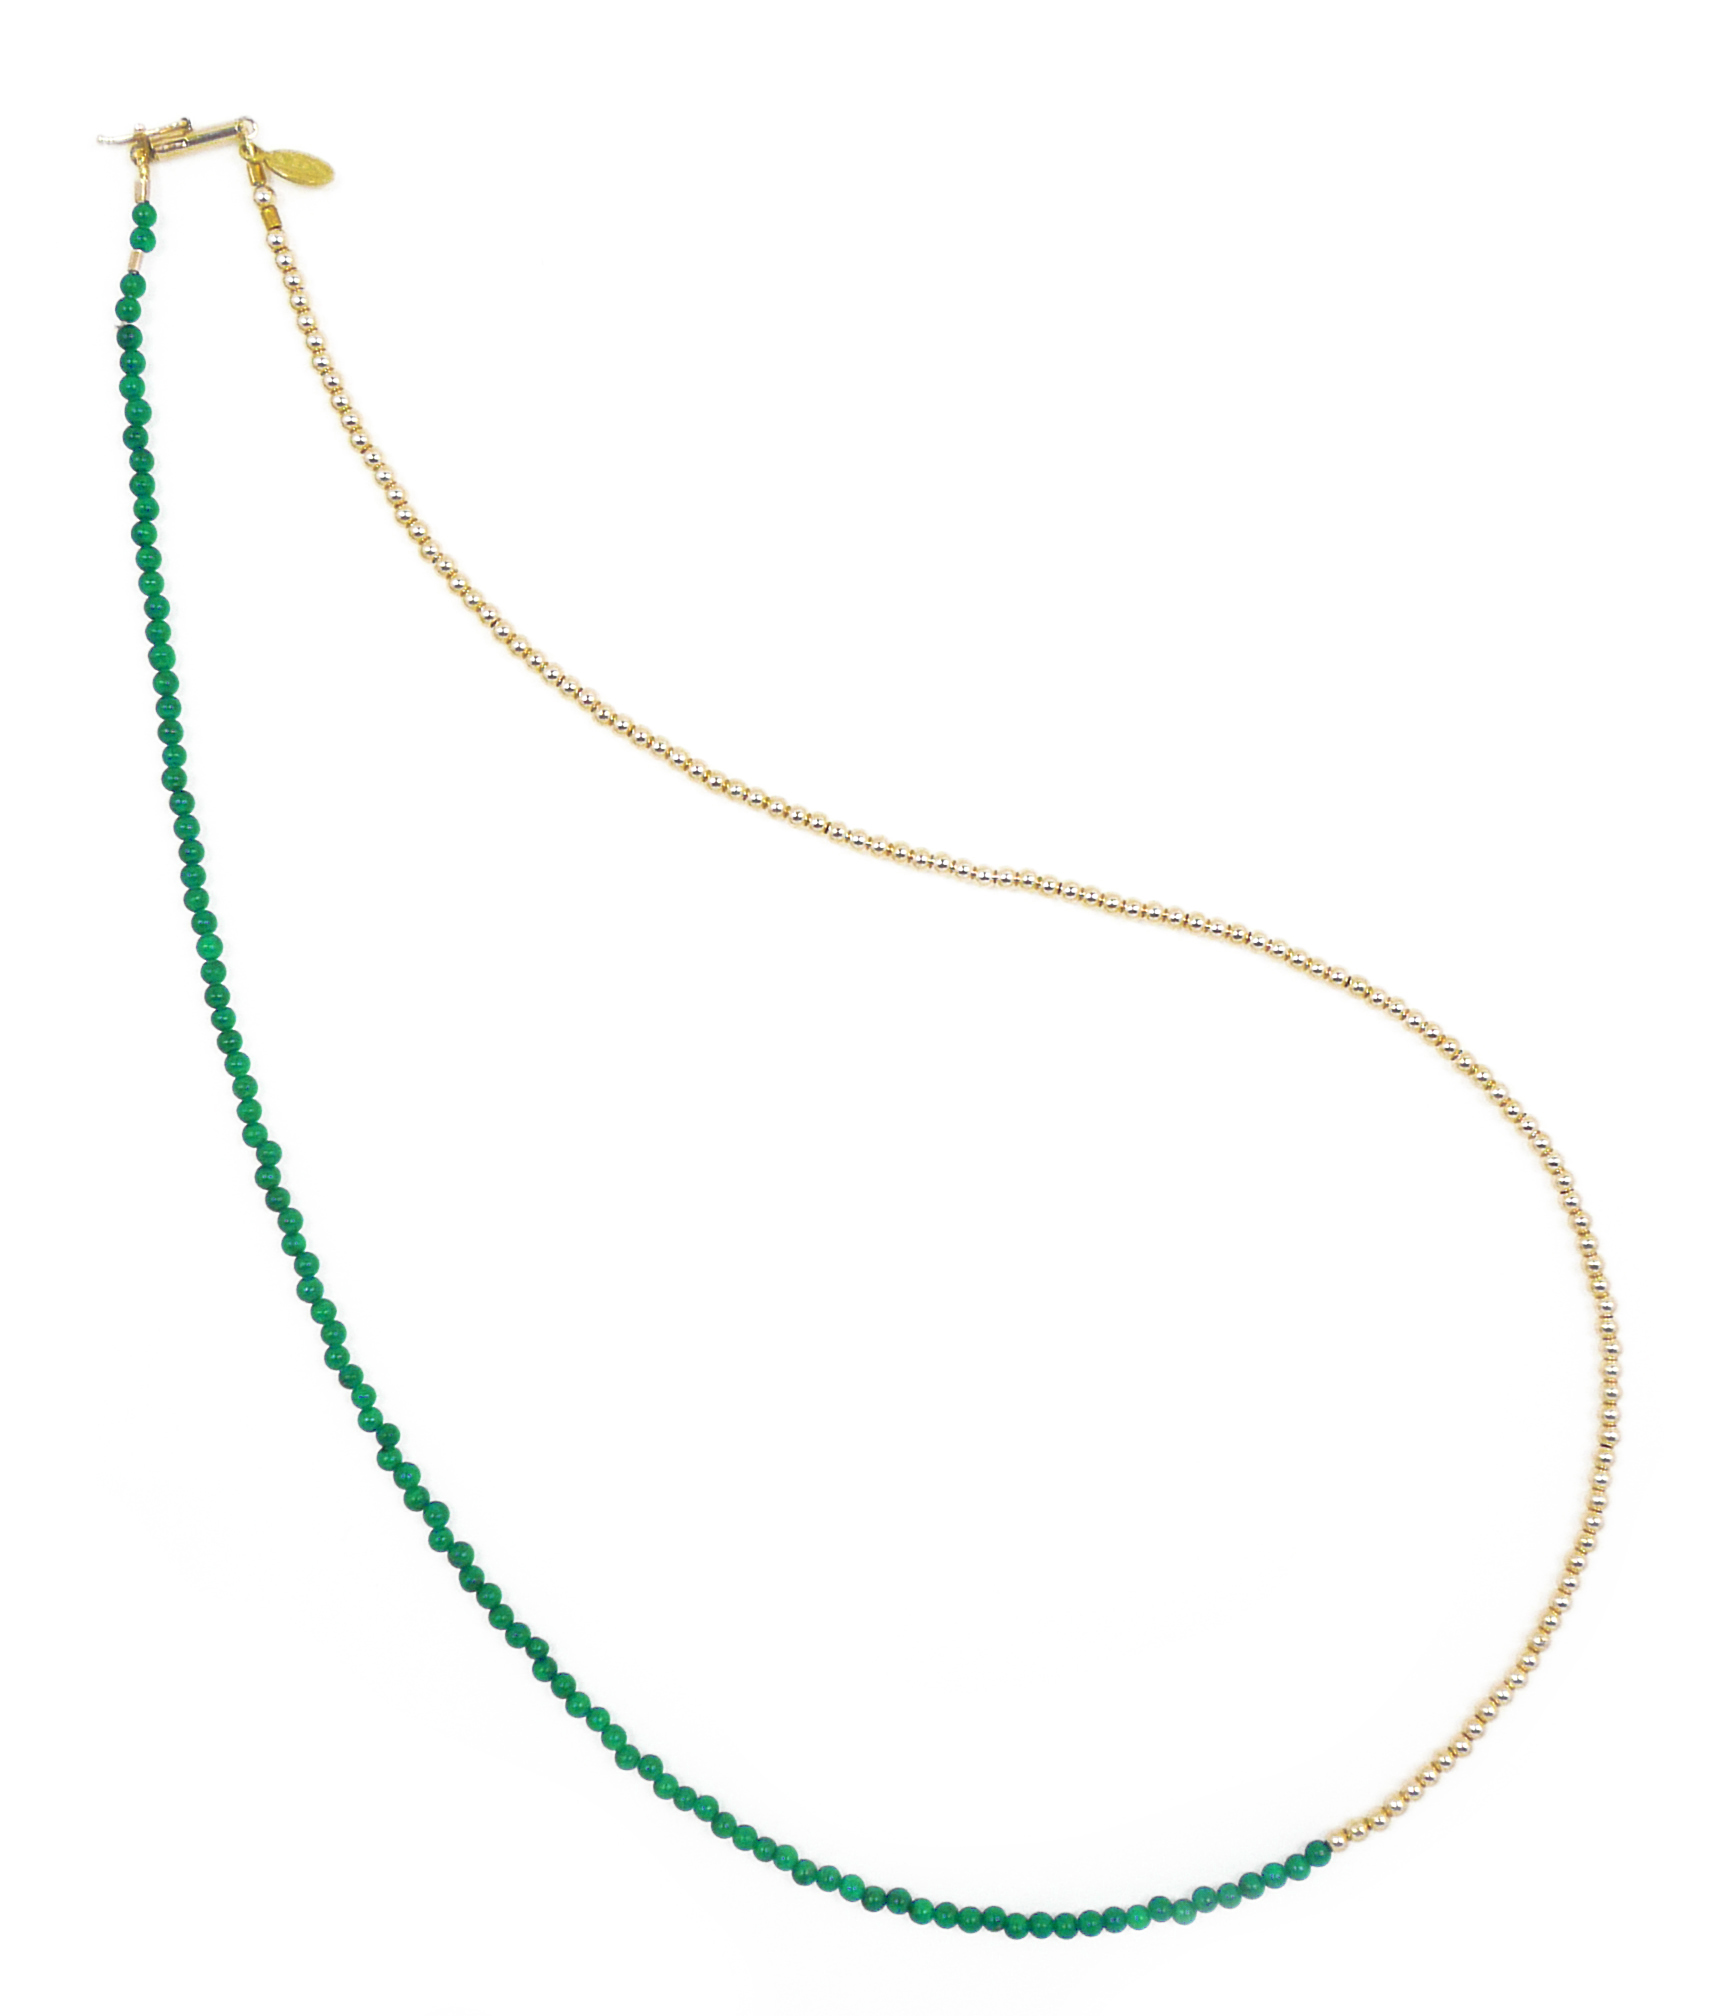 Delicate Malachite and Gold Bead Necklace Jewelry by Nektar De Stagni May also be worn as bracelet